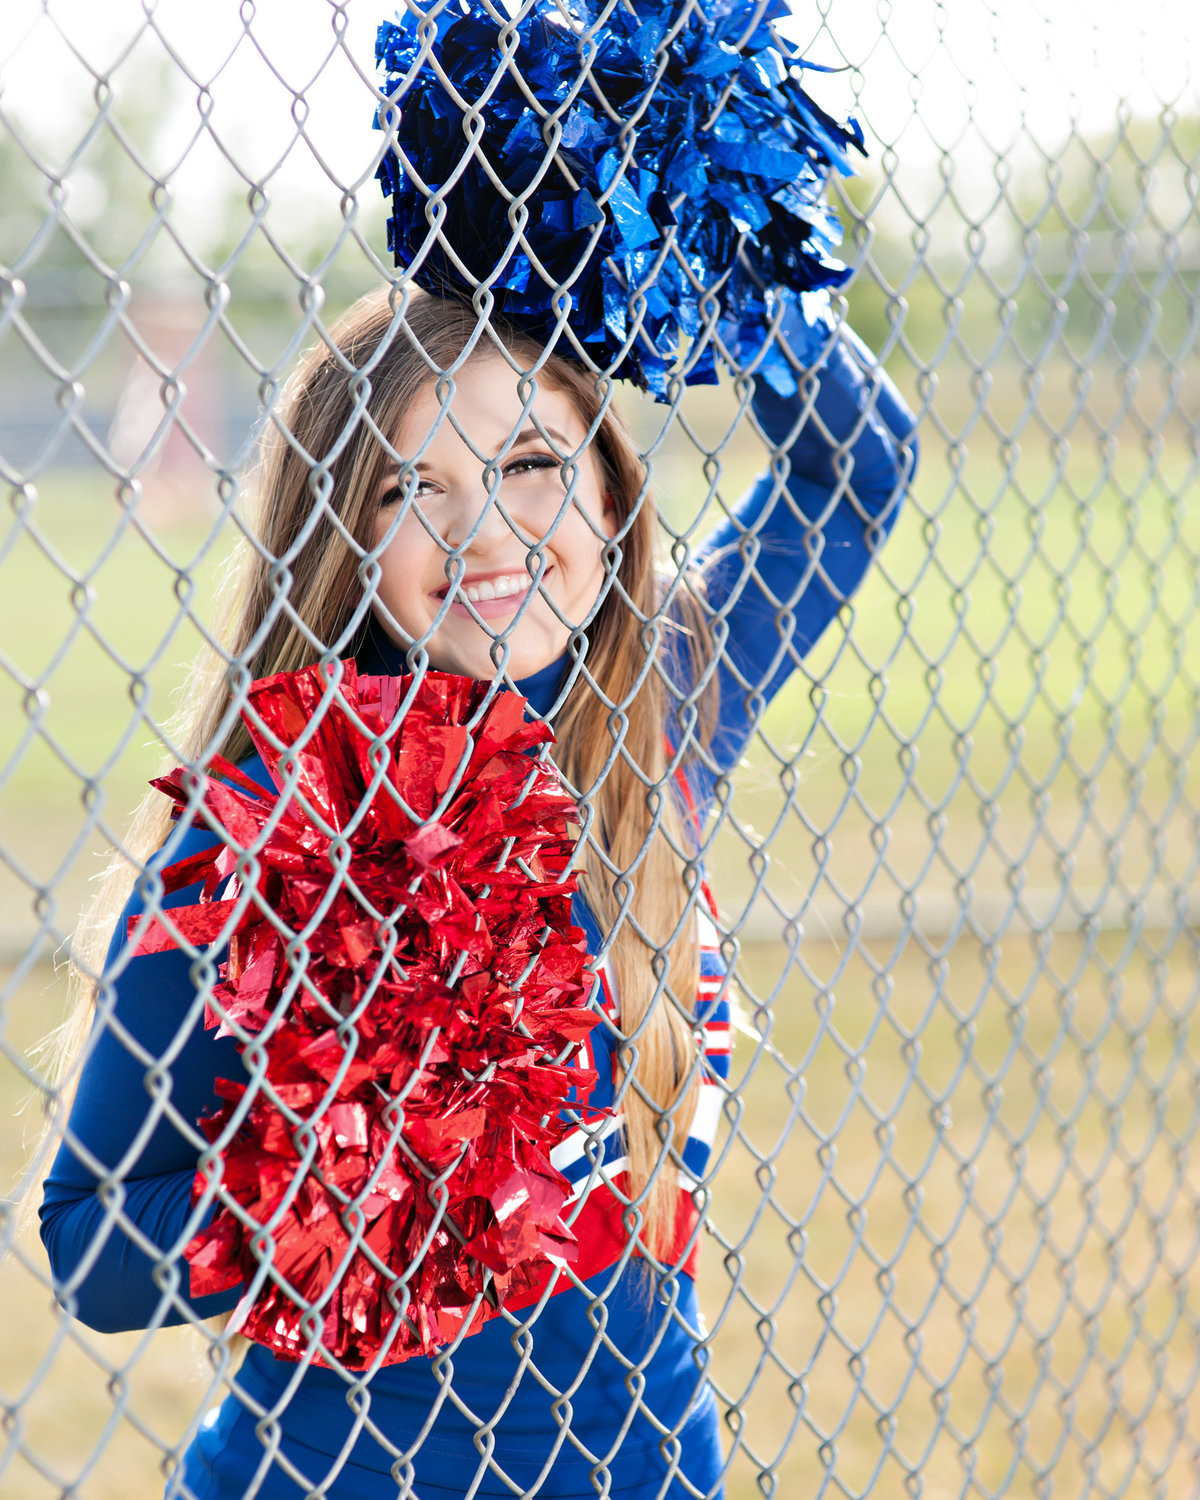 mason michigan senior portraits of cheerleader on football field